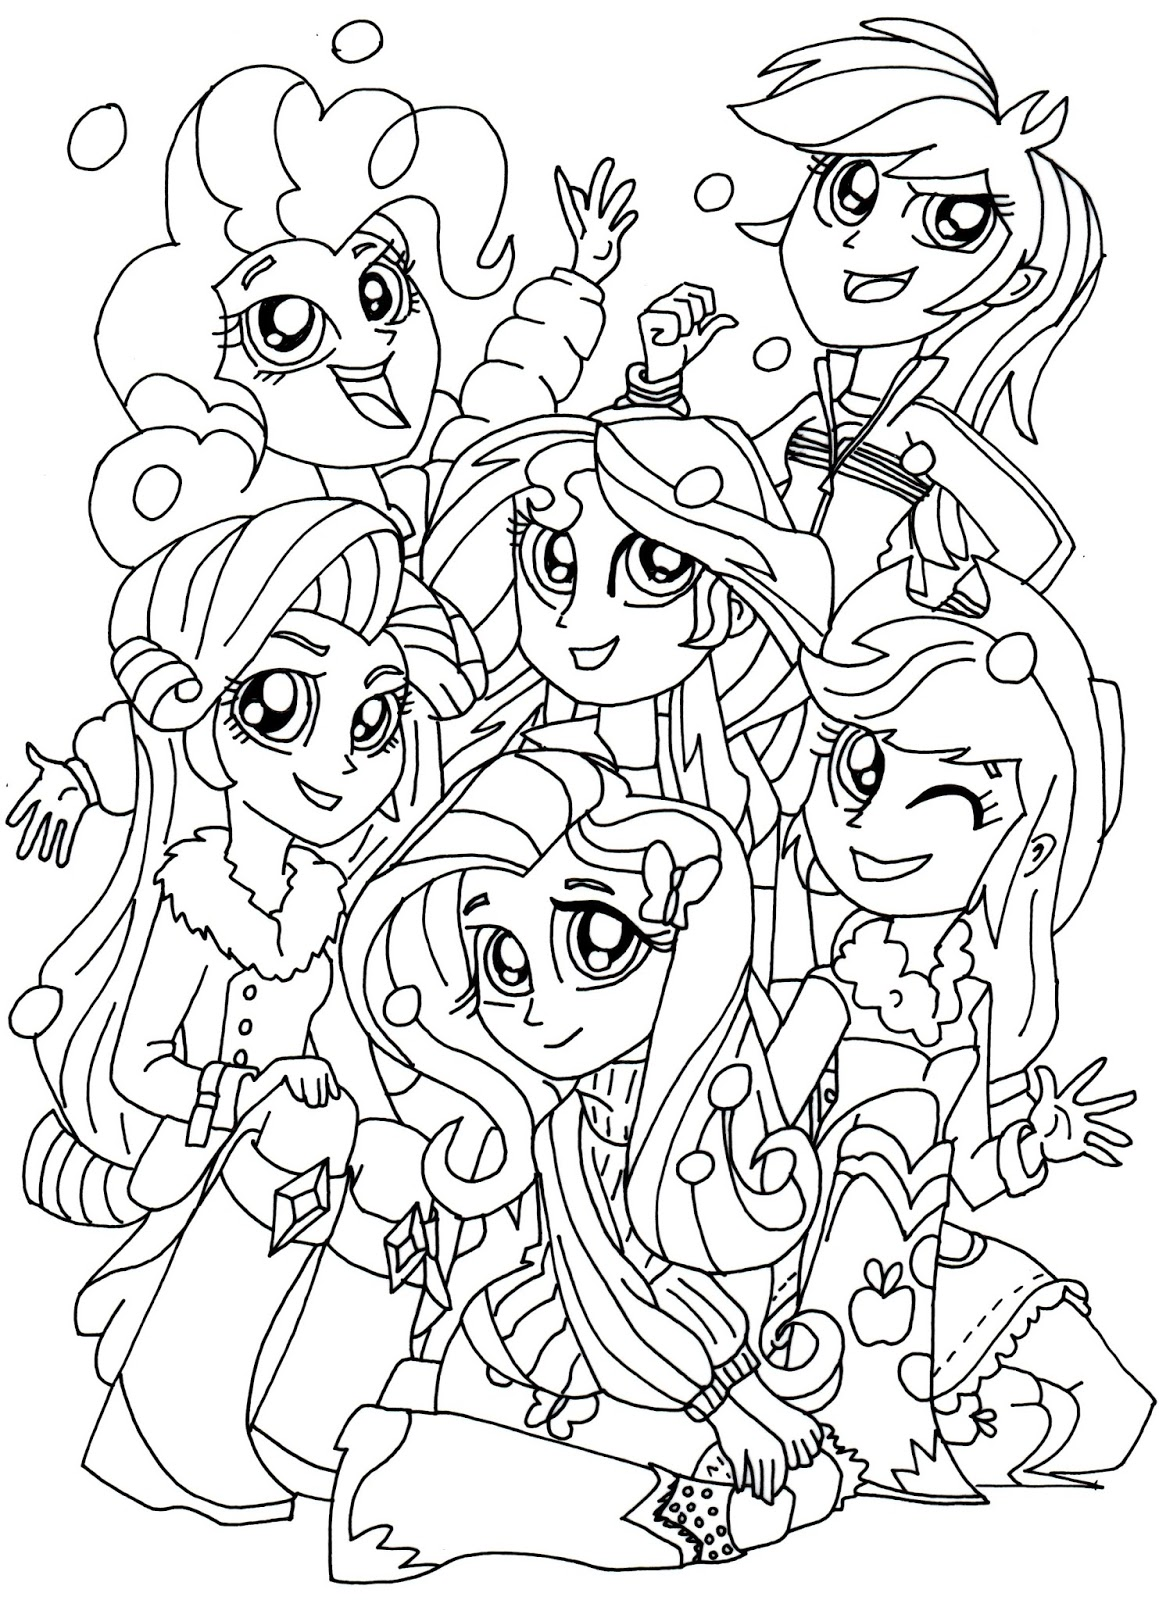 Free Printable My Little Pony Coloring Pages January 2016 Coloring Pages Of My Pony Equestria Free